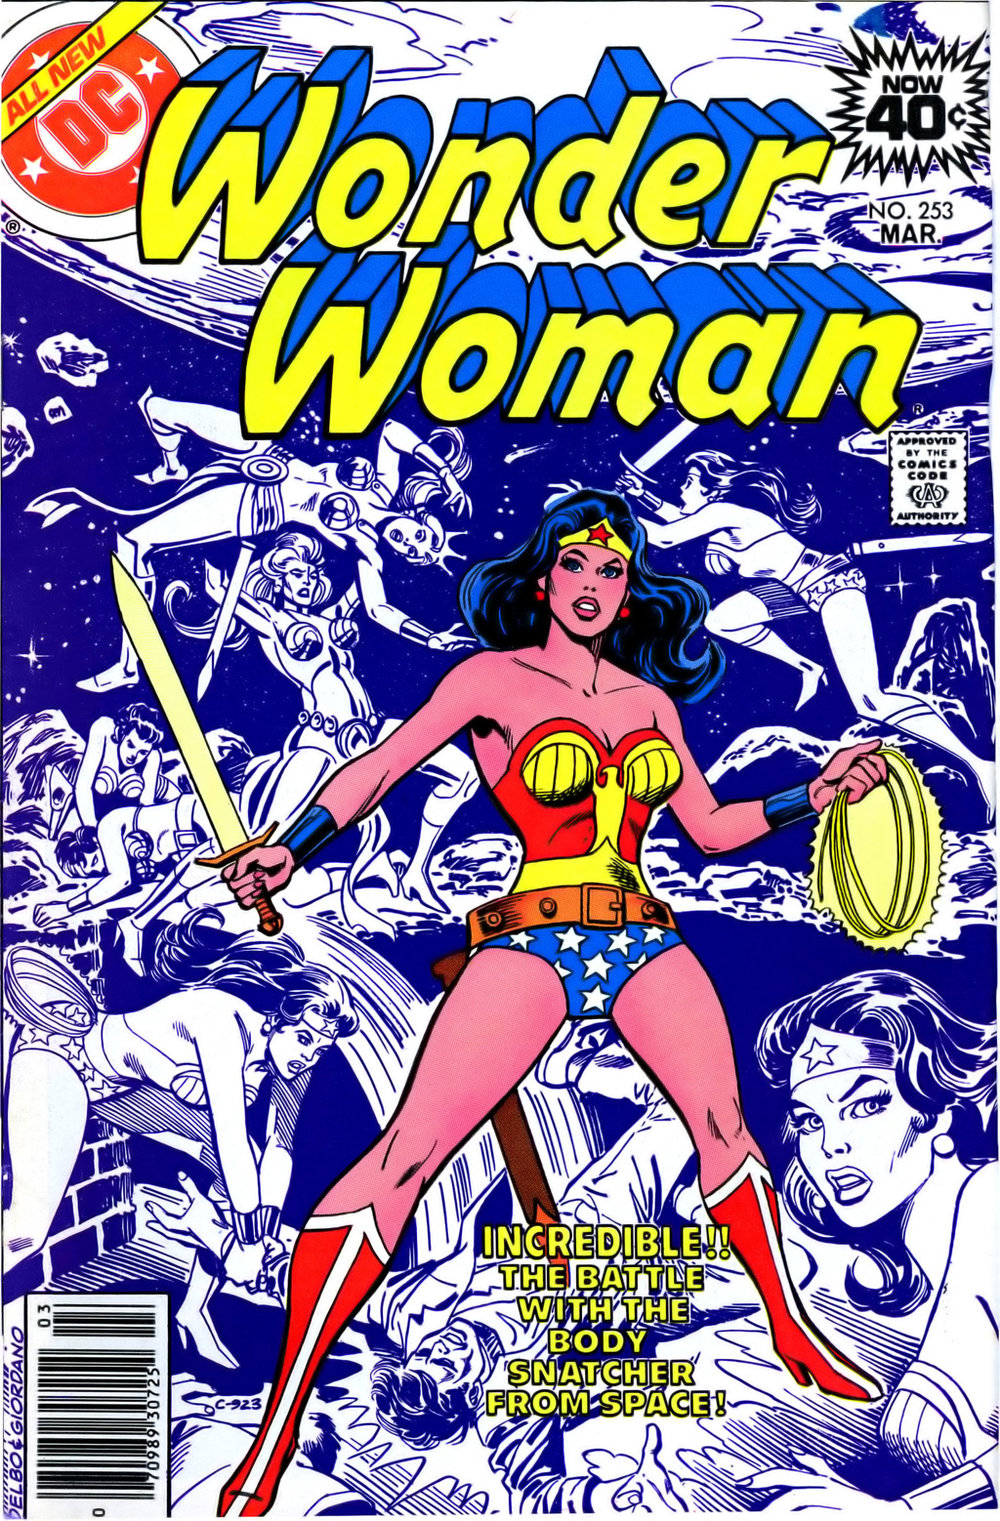 Wonder Woman (1942) #253, cover penciled by Jose Delbo & inked by Dick Giordano.